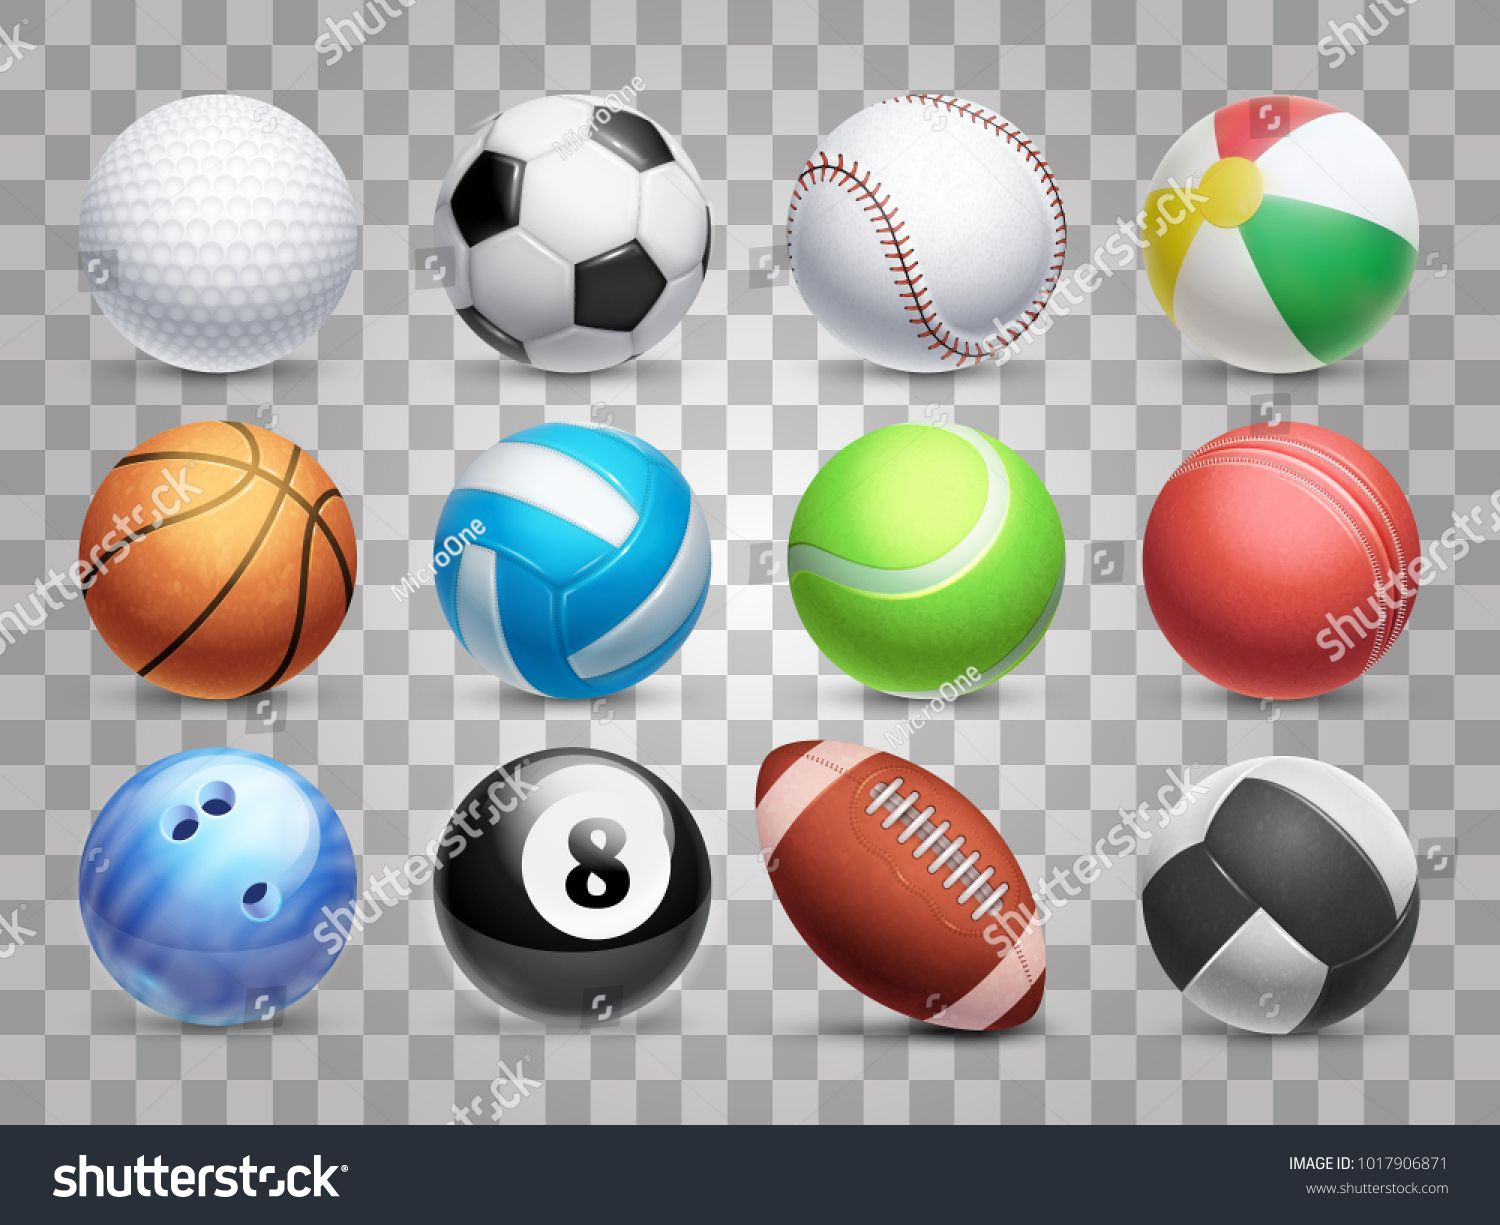 Realistic Sports Balls Vector Big Set Isolated On Transparent Background Illustration Of Soccer And Sports Balls Birthday Party Crafts Transparent Background